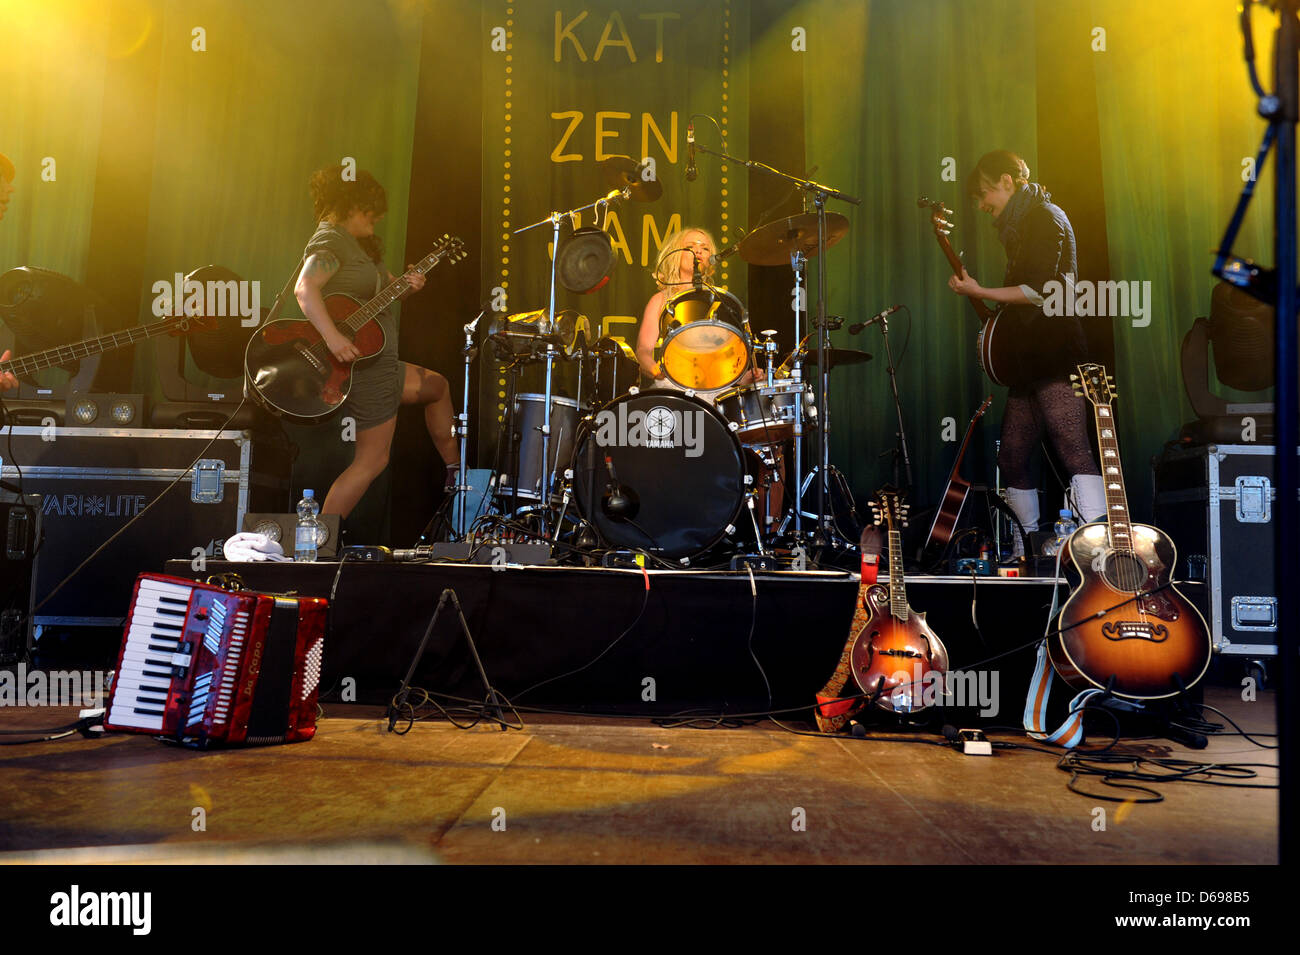 The Norwegian folk-rock band Katzenjammer performs on stage in Cologne, Germany, 22 June 2012. Photo: Jan Knoff - Stock Image